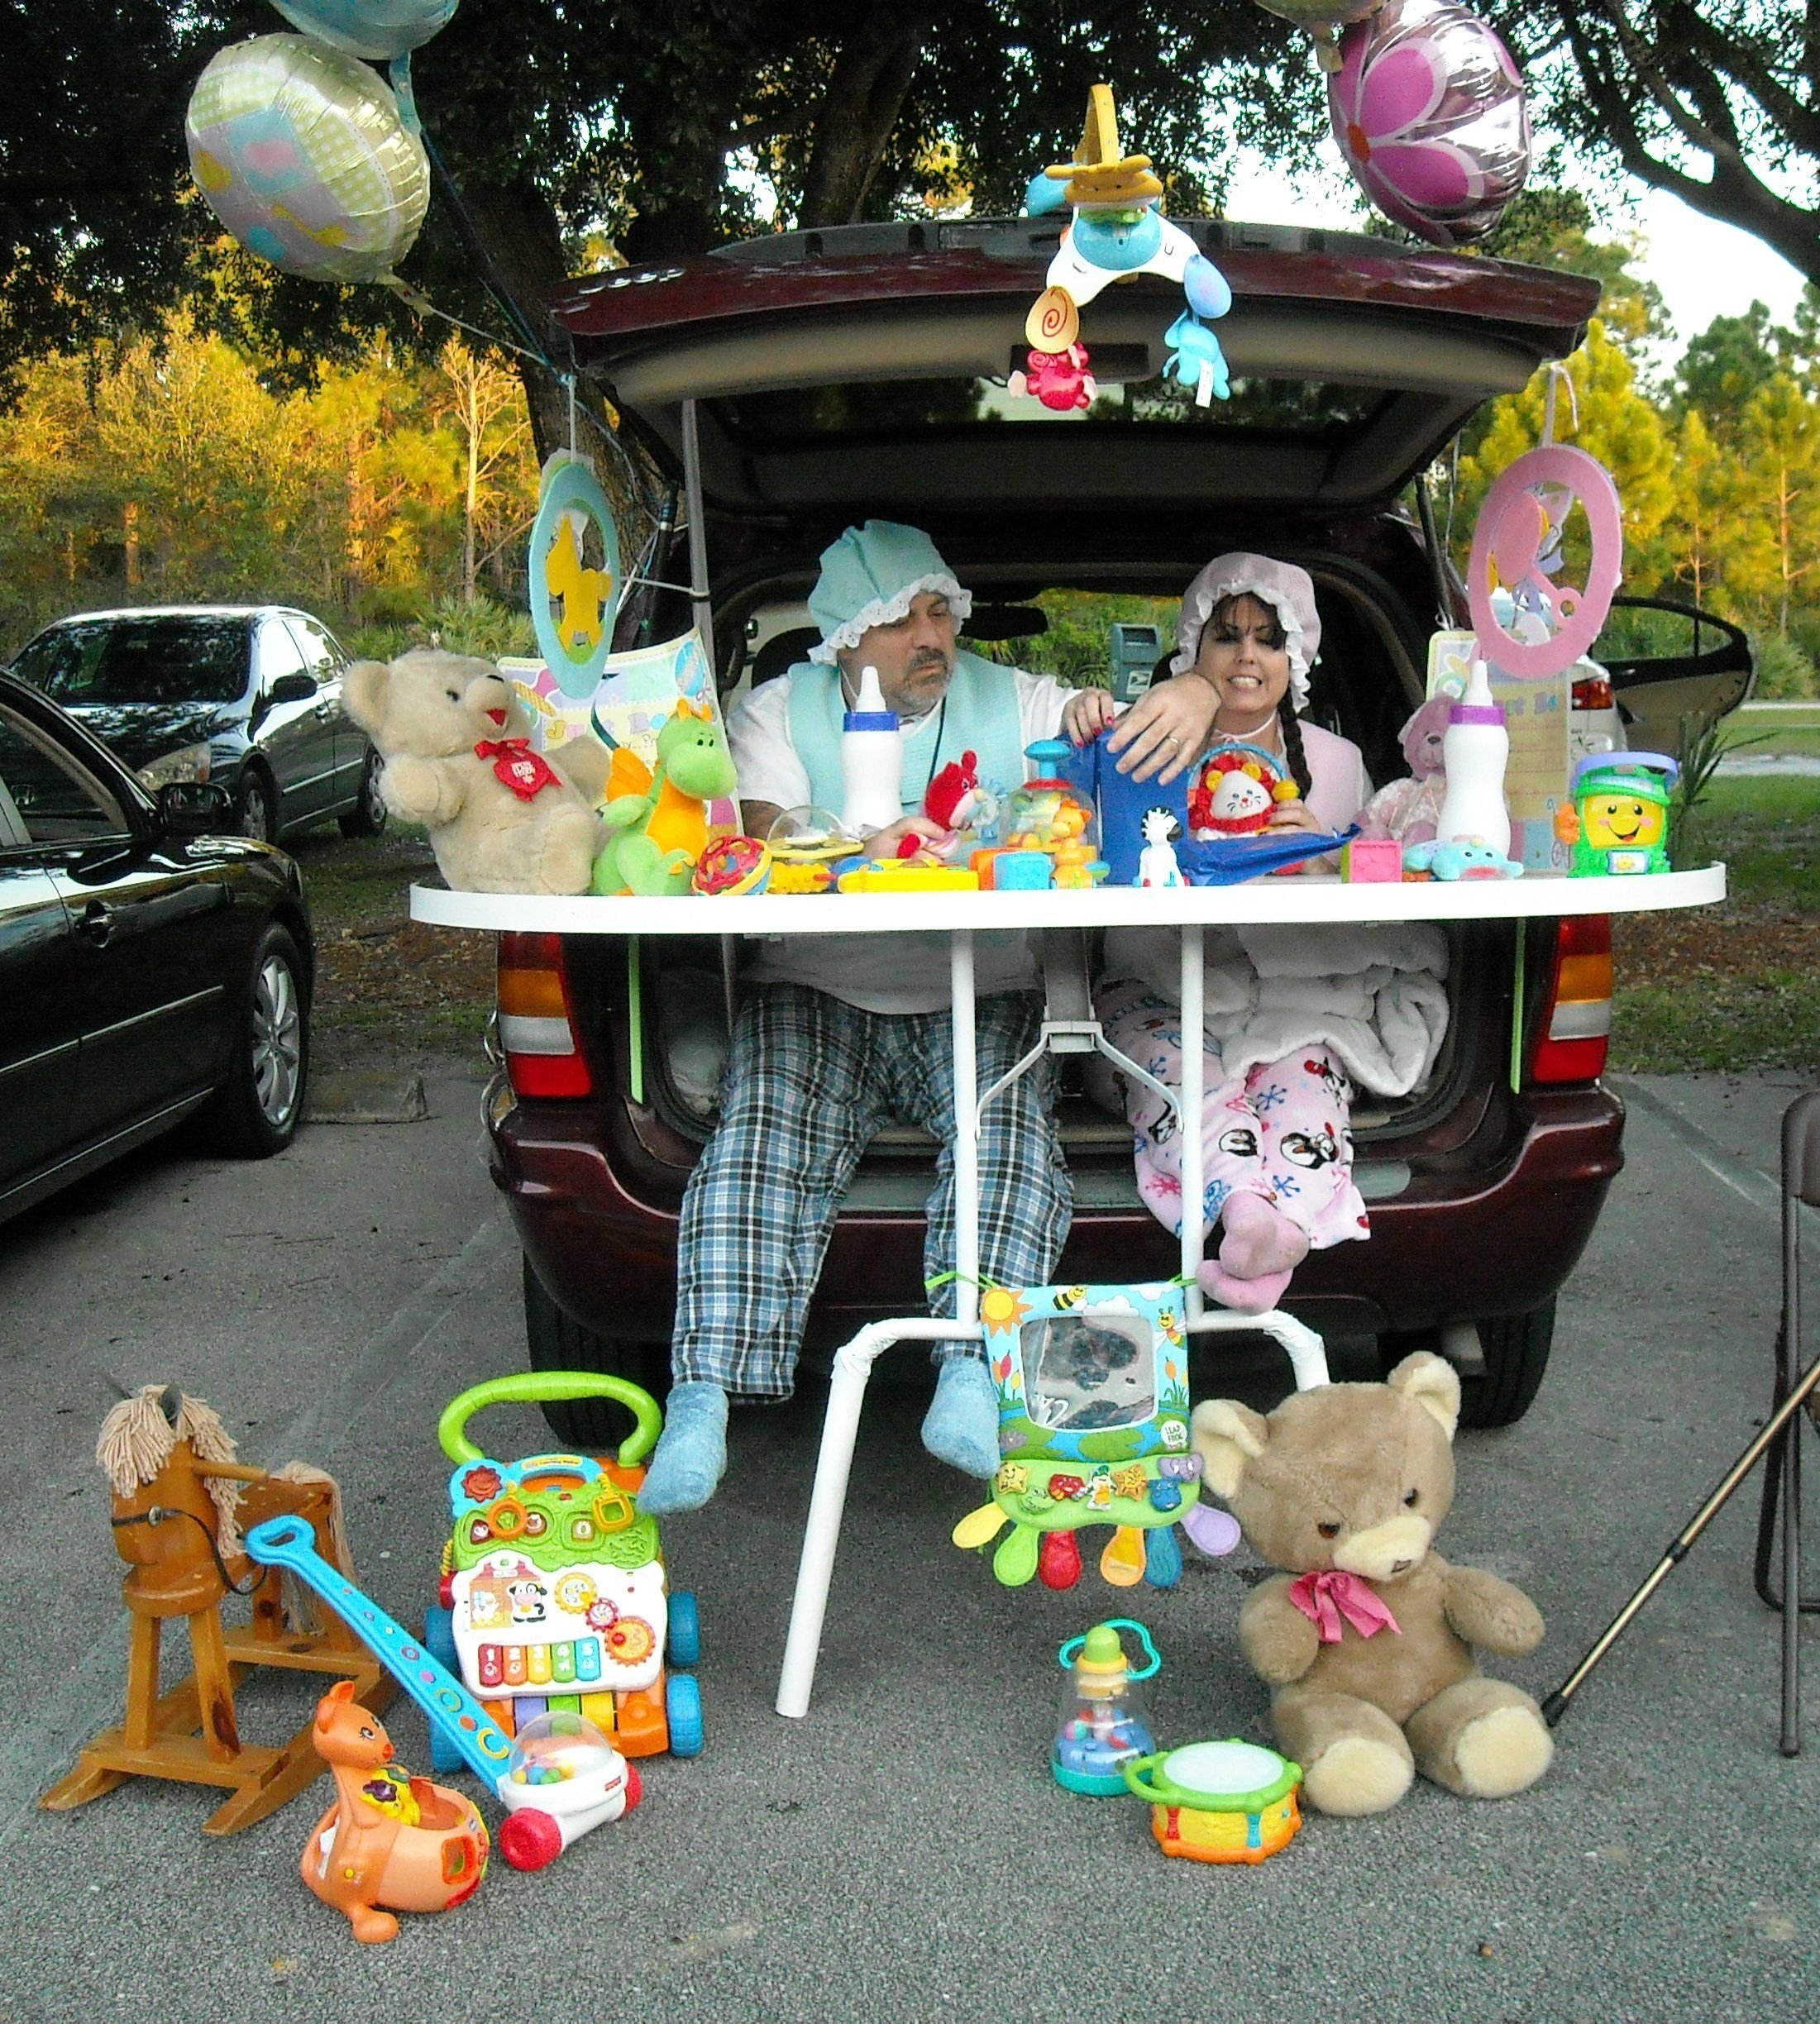 10 Attractive Trunk Or Treat Decorating Ideas For Church exterior trunk or treat decorating ideas for churchdisplaying 1 2020